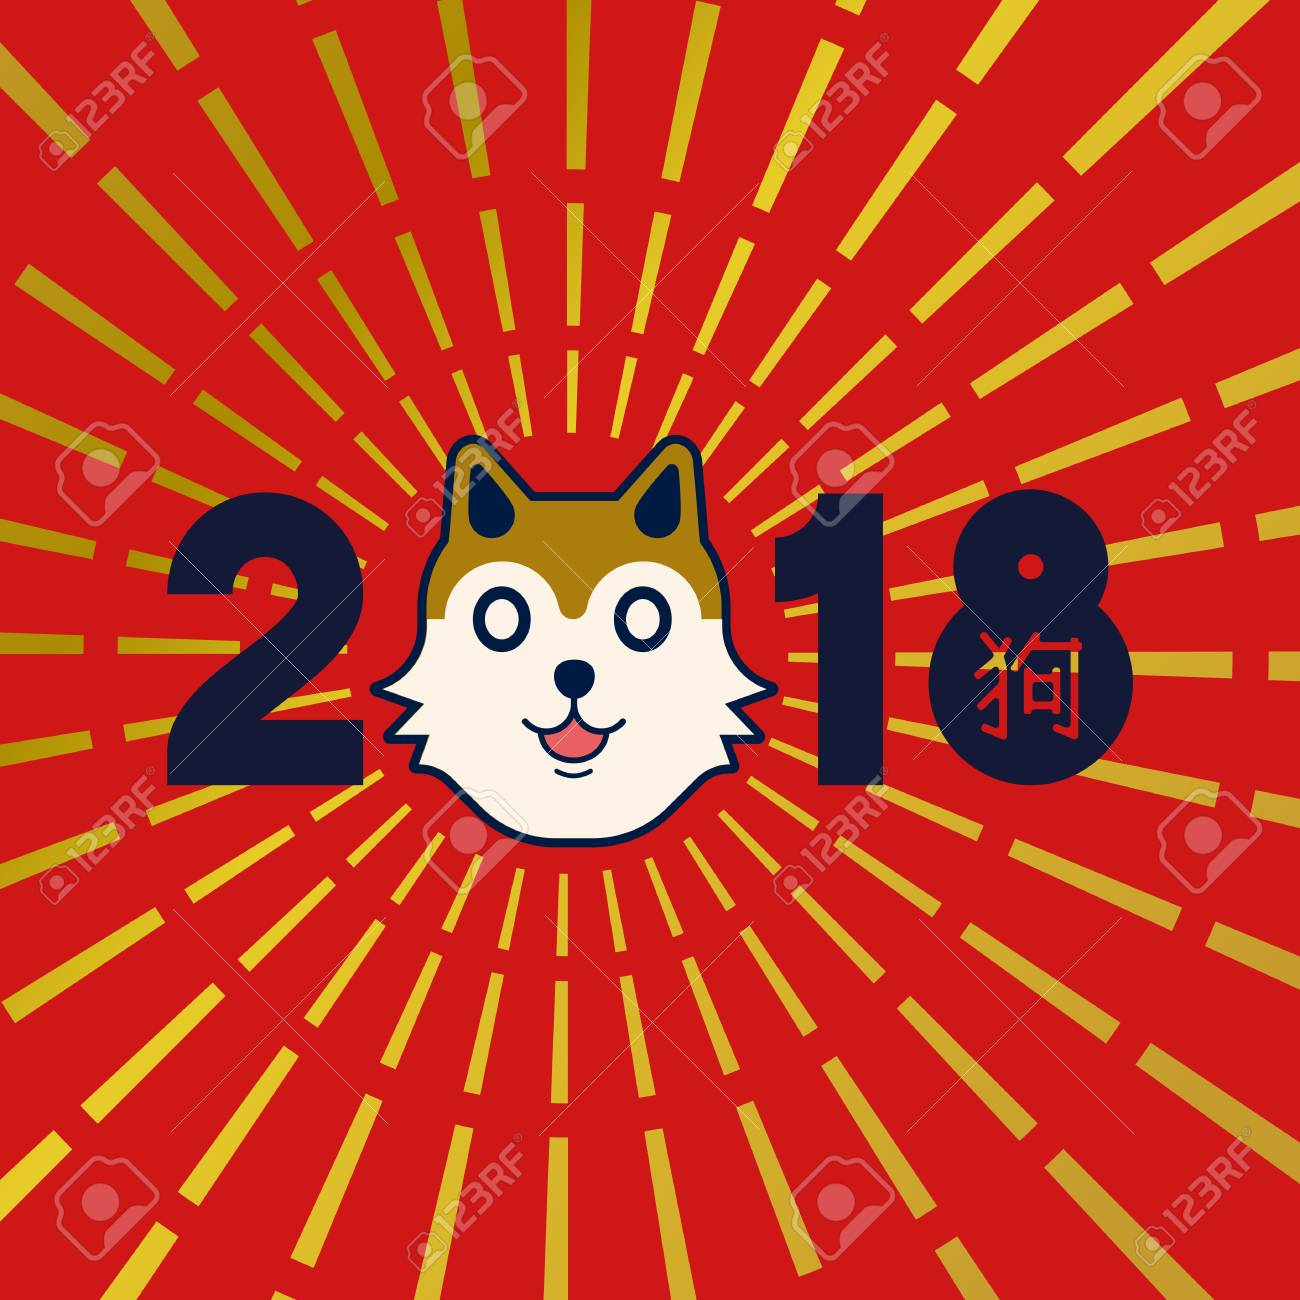 2015 chinese new year quotes advance happy chinese new year 2015 chinese new year 2018 gold typography quote illustration with cute shiba inu puppy and traditional calligraphy kristyandbryce Choice Image